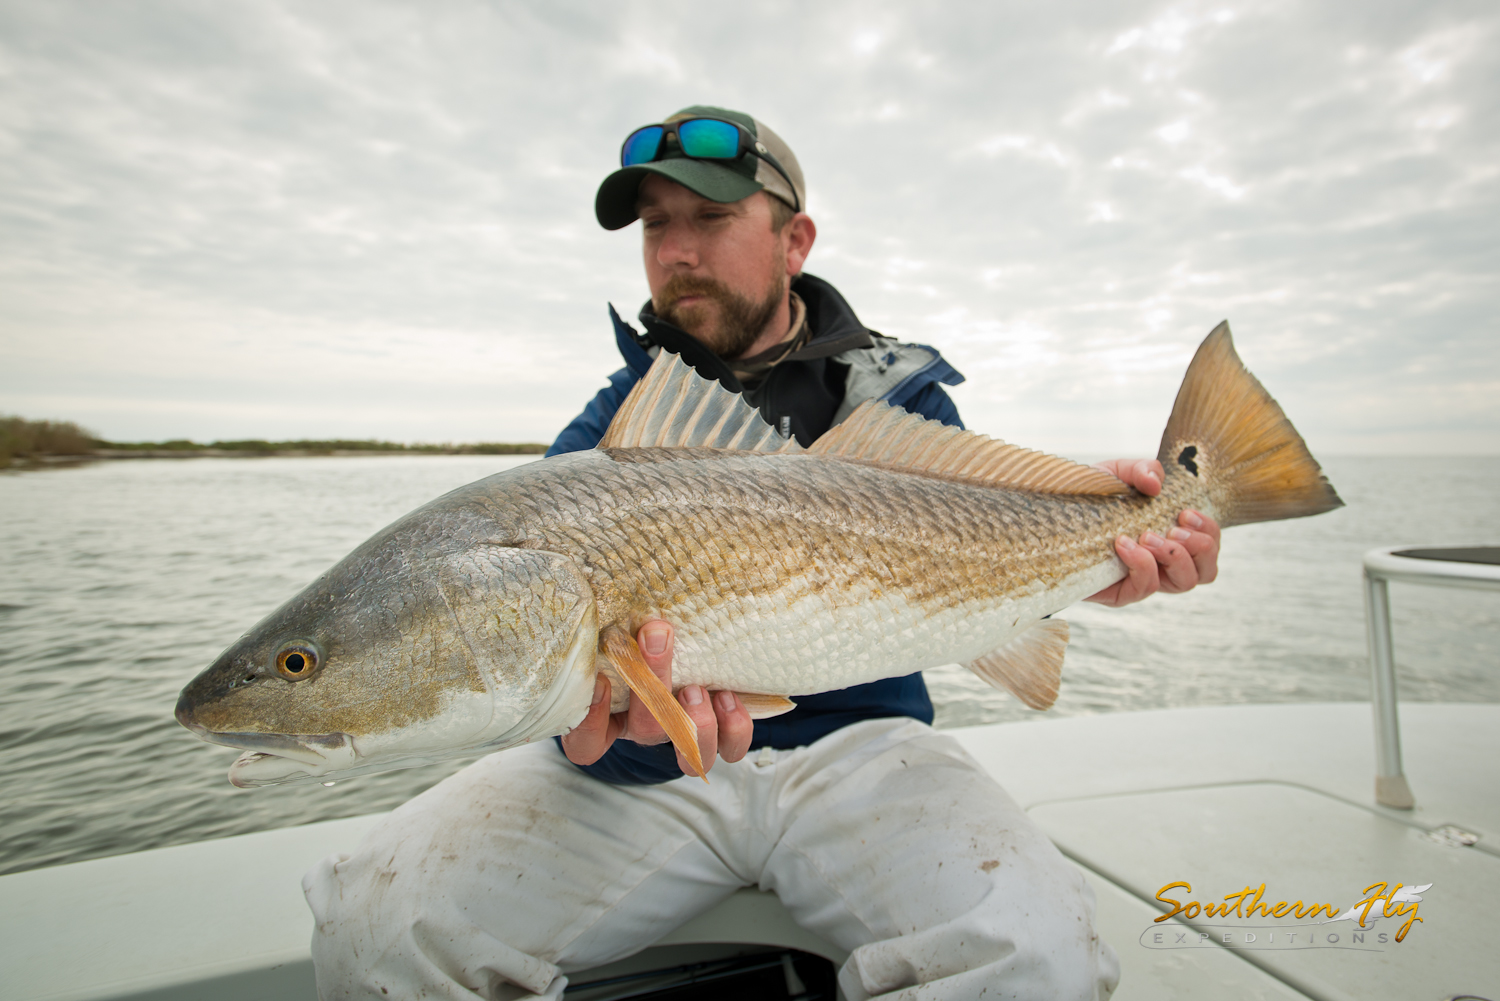 Fly fishing guides in New Orleans by Southern Fly Expeditions of New Orleans